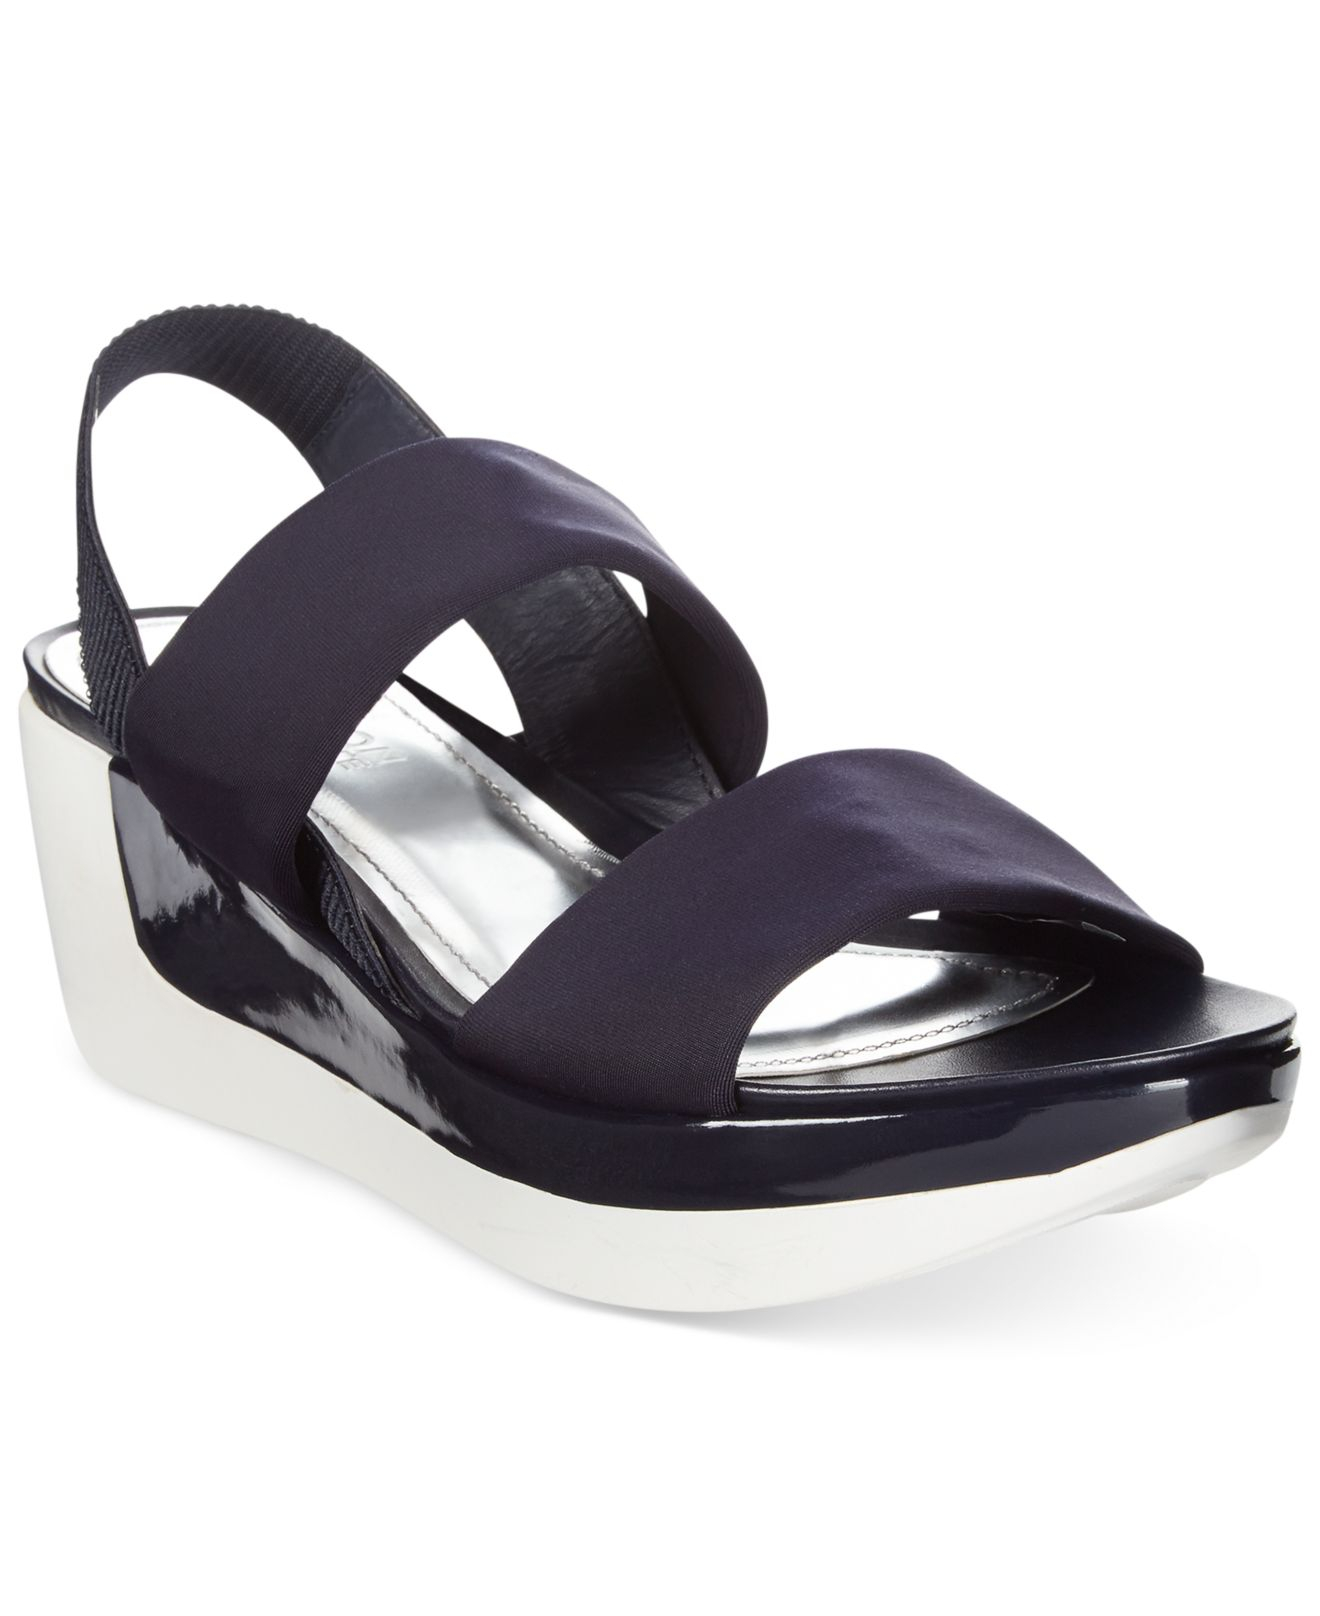 Kenneth Cole Reaction Shoes  Kenneth Cole Reaction Pepe Pot Womens Sandals Black